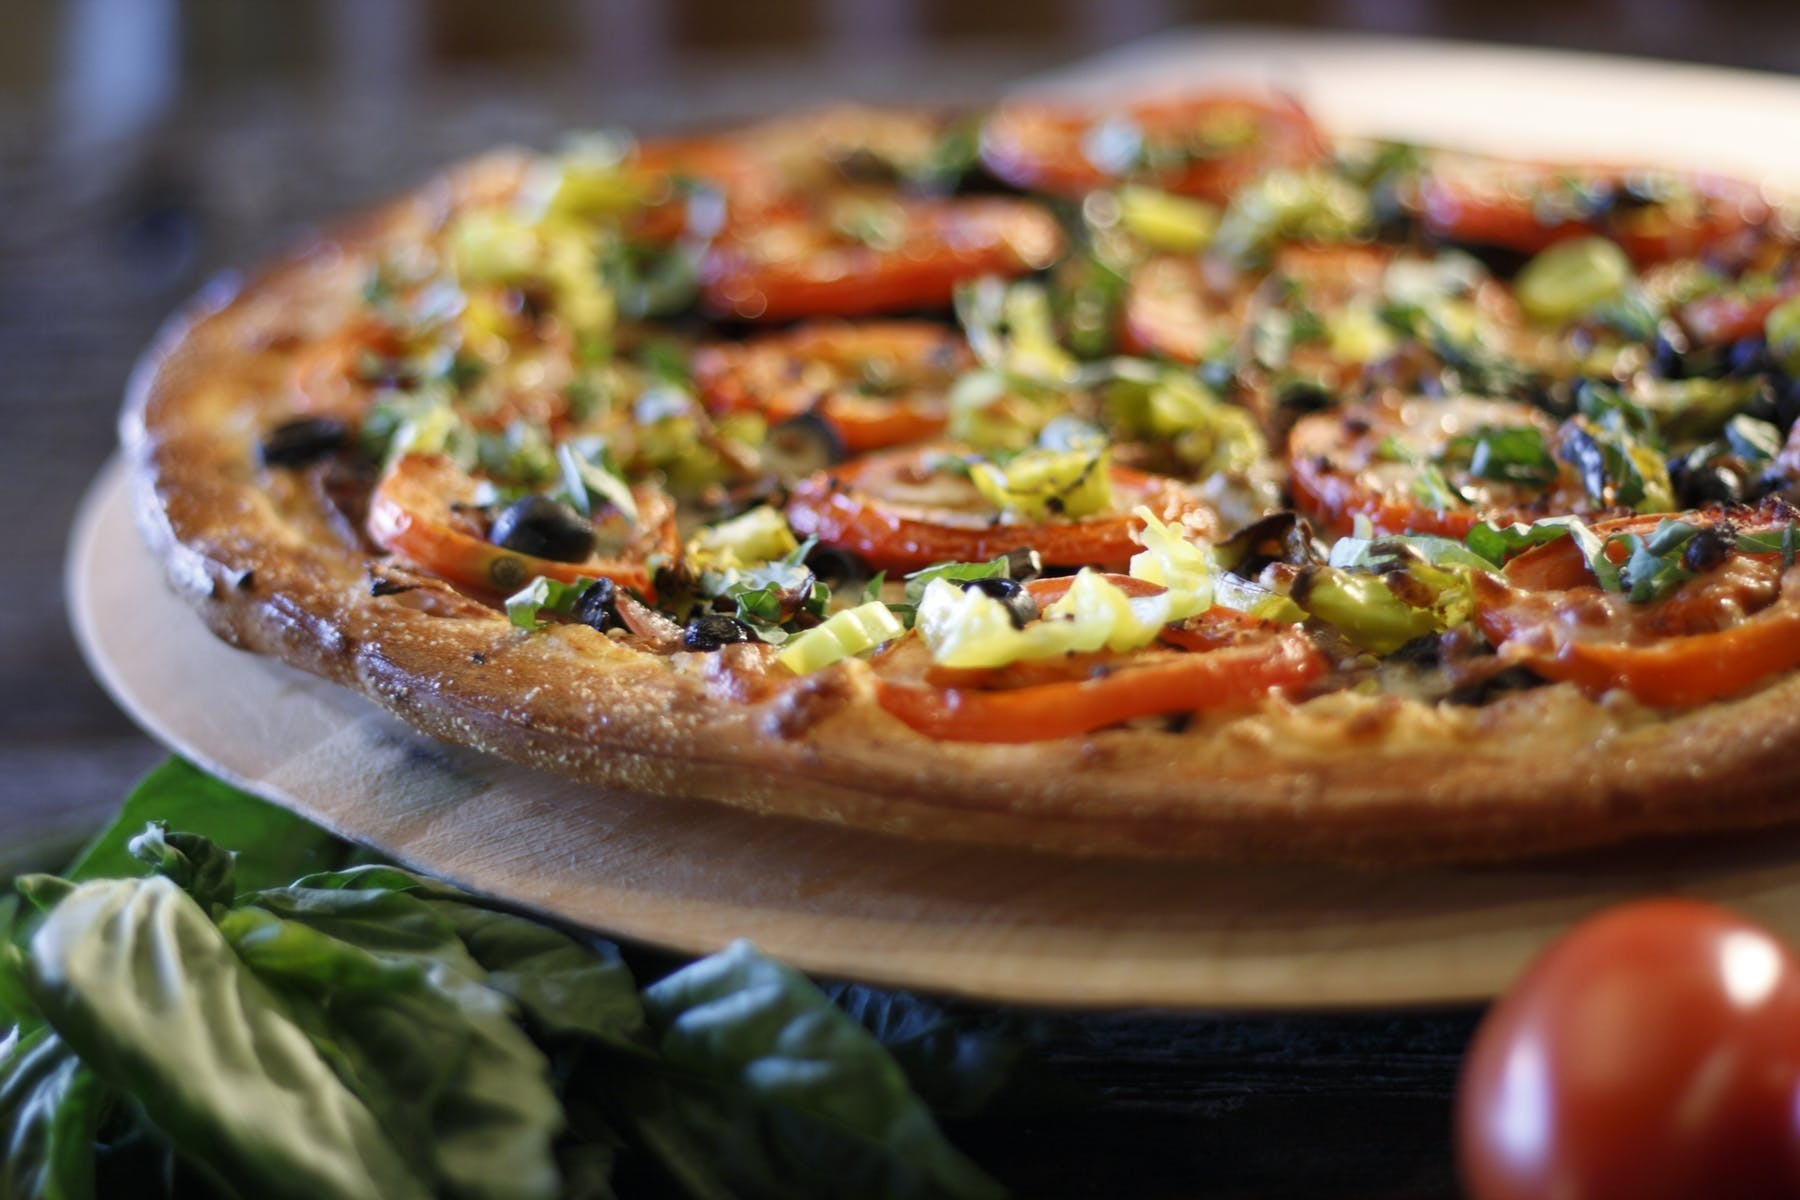 Gourmet Pizza Delivery Dine In Take Out Vegan Gluten Free